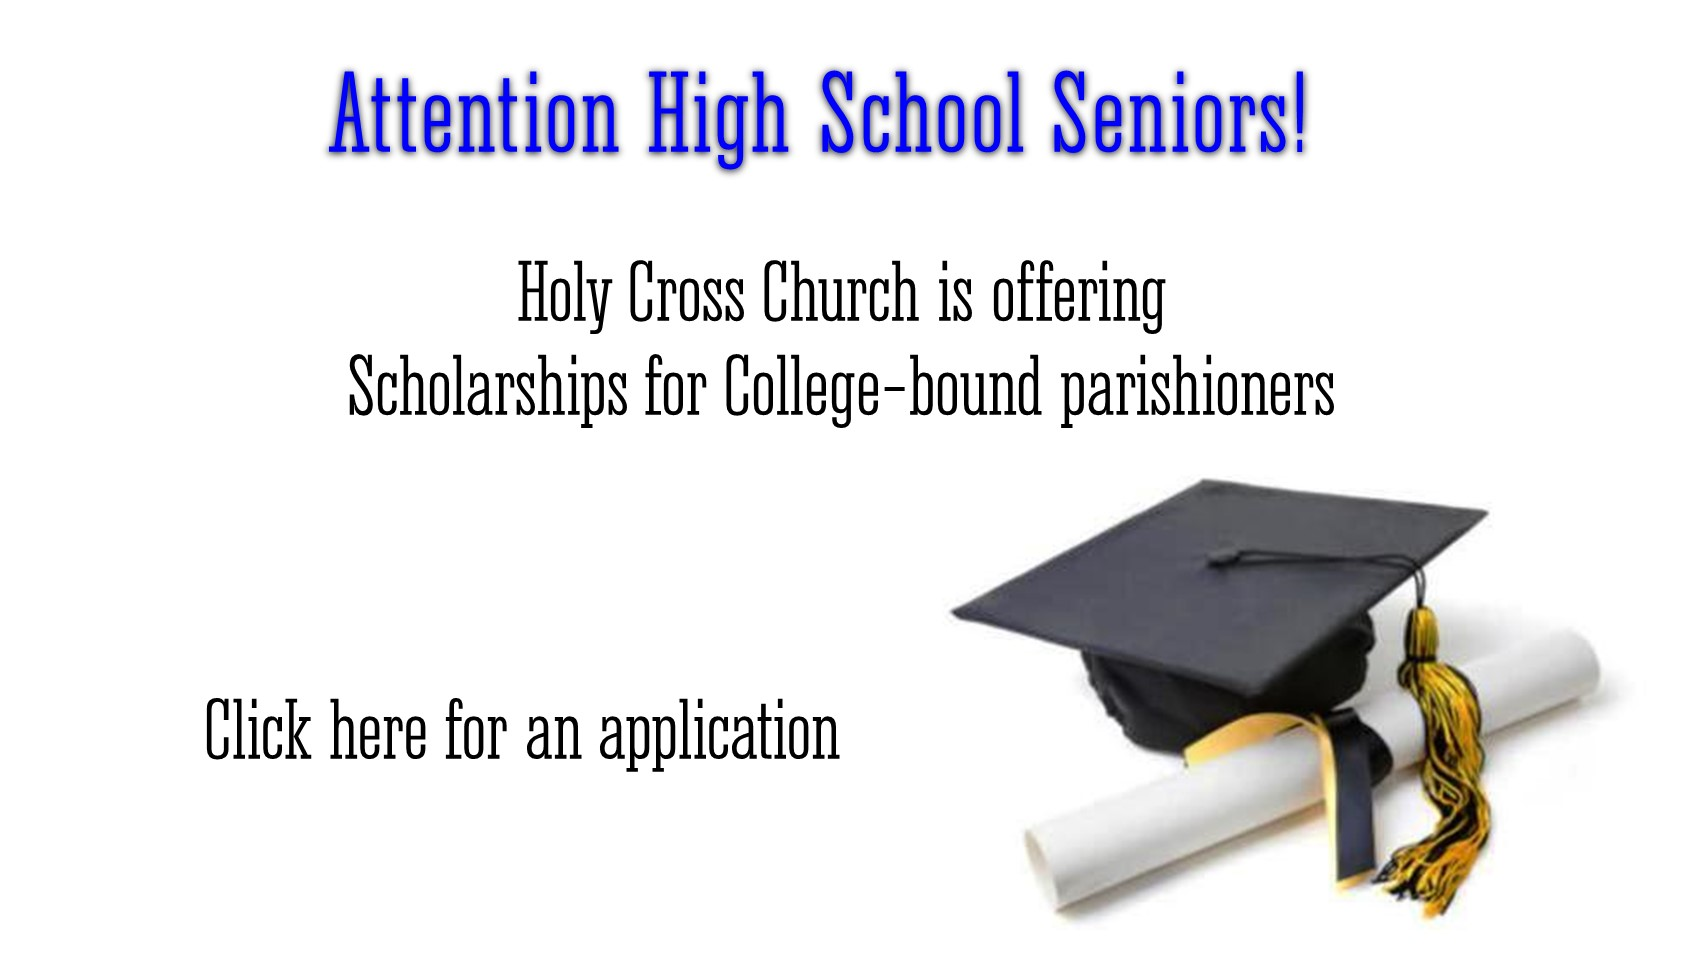 Attention High School Seniors